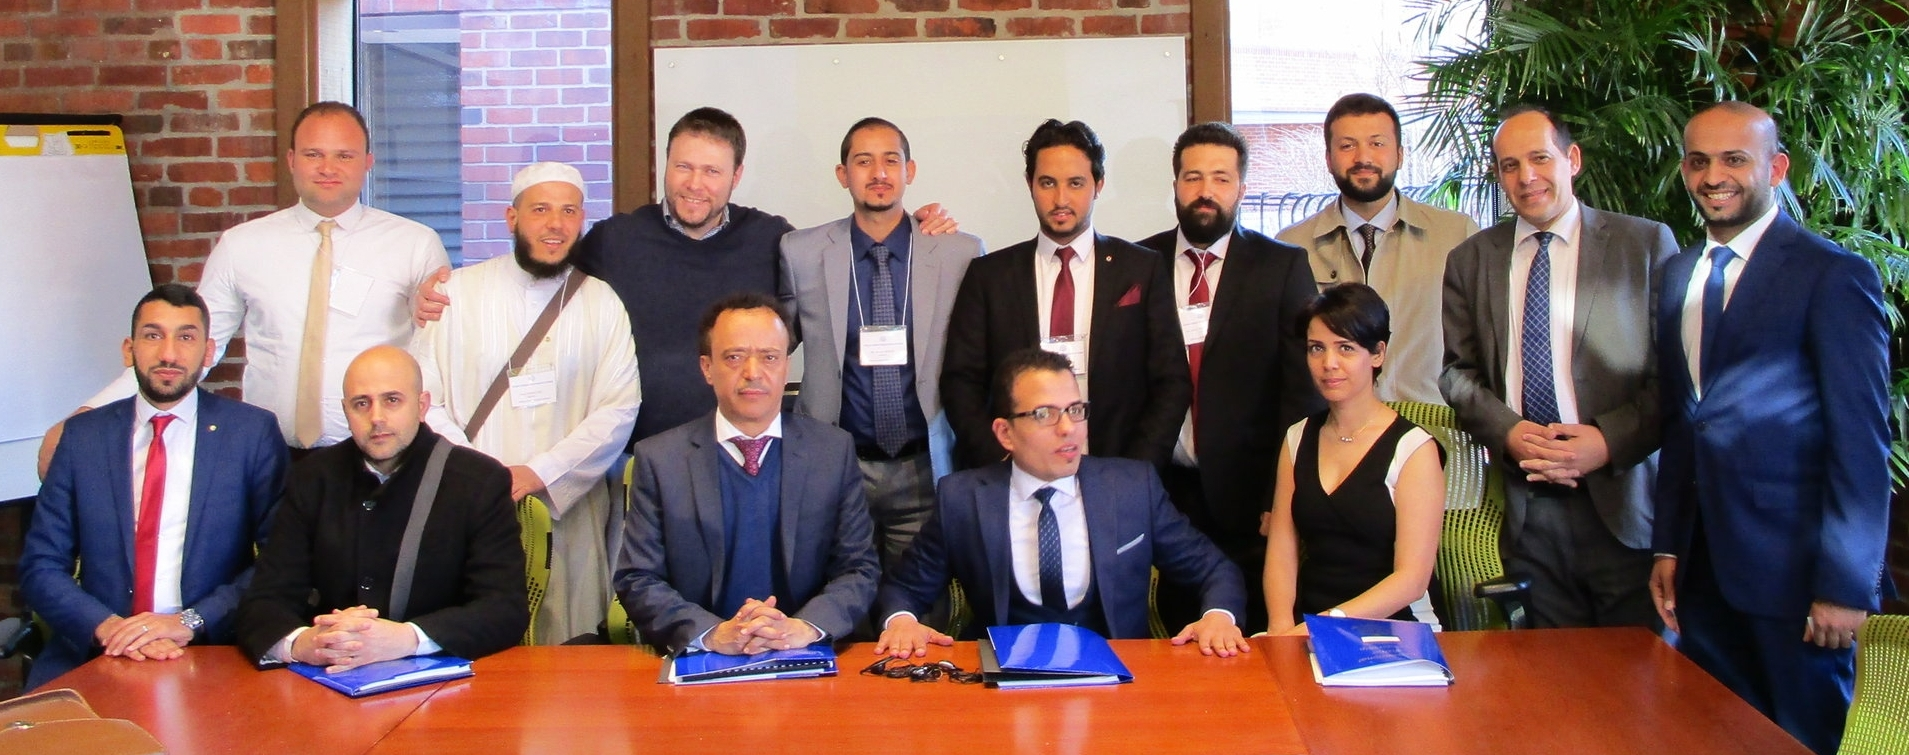 """Religious freedom has valuable contribution to make to the theme the IVLP participants were exploring of """"Countering Extremist Messaging and Protecting Youth."""""""